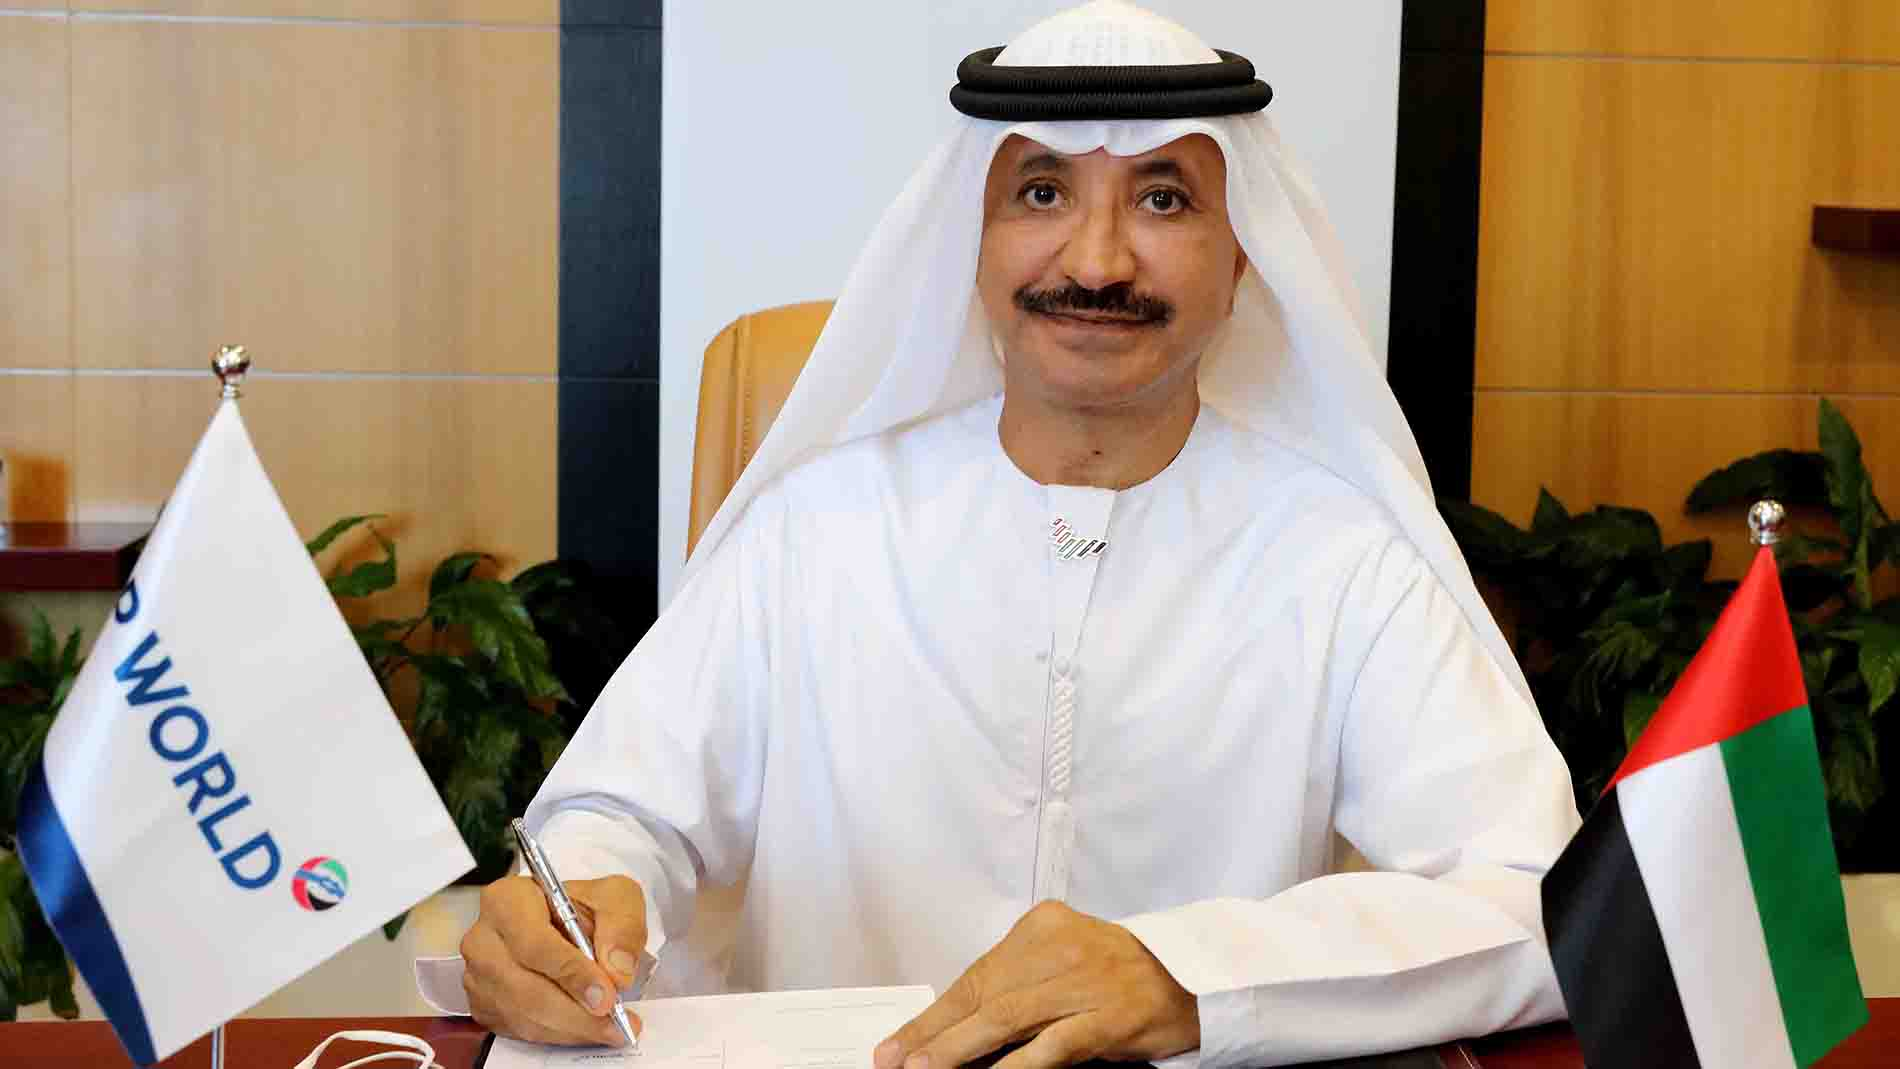 H.E. Sultan Ahmed Bin Sulayem, Group Chairman and CEO at DP World